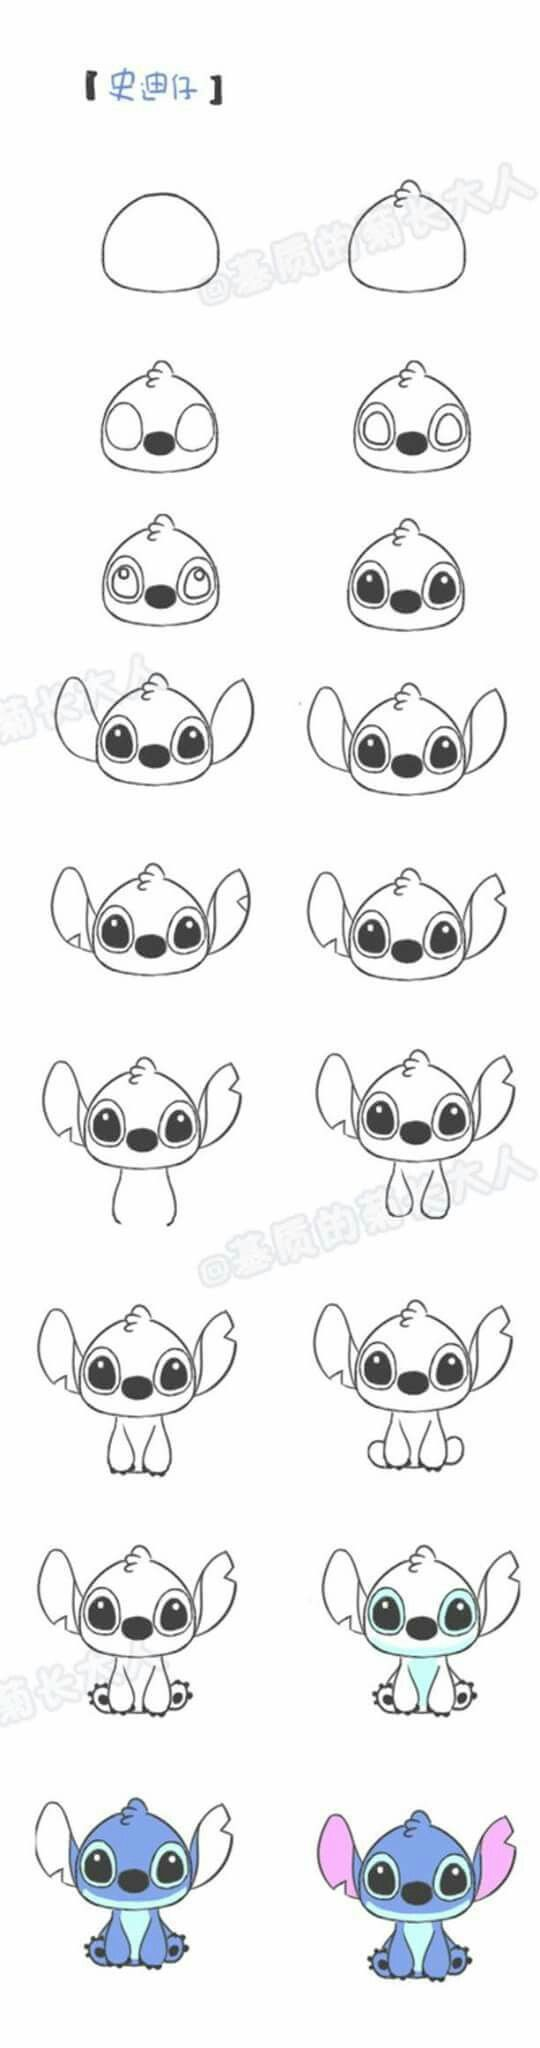 Stitch is my all time favorite! I will definitely have to practice this one!